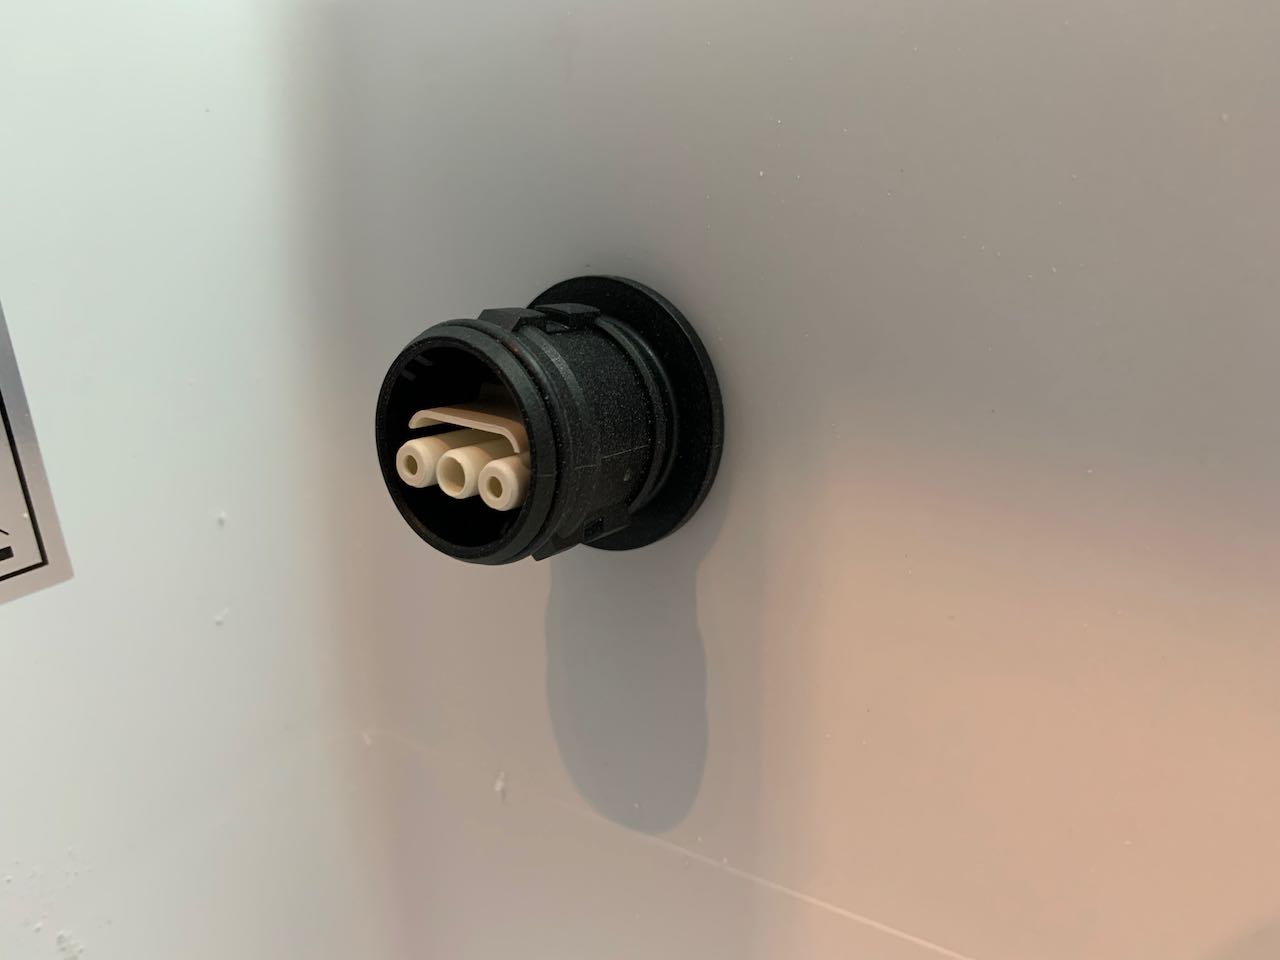 A photo showing the installed socket